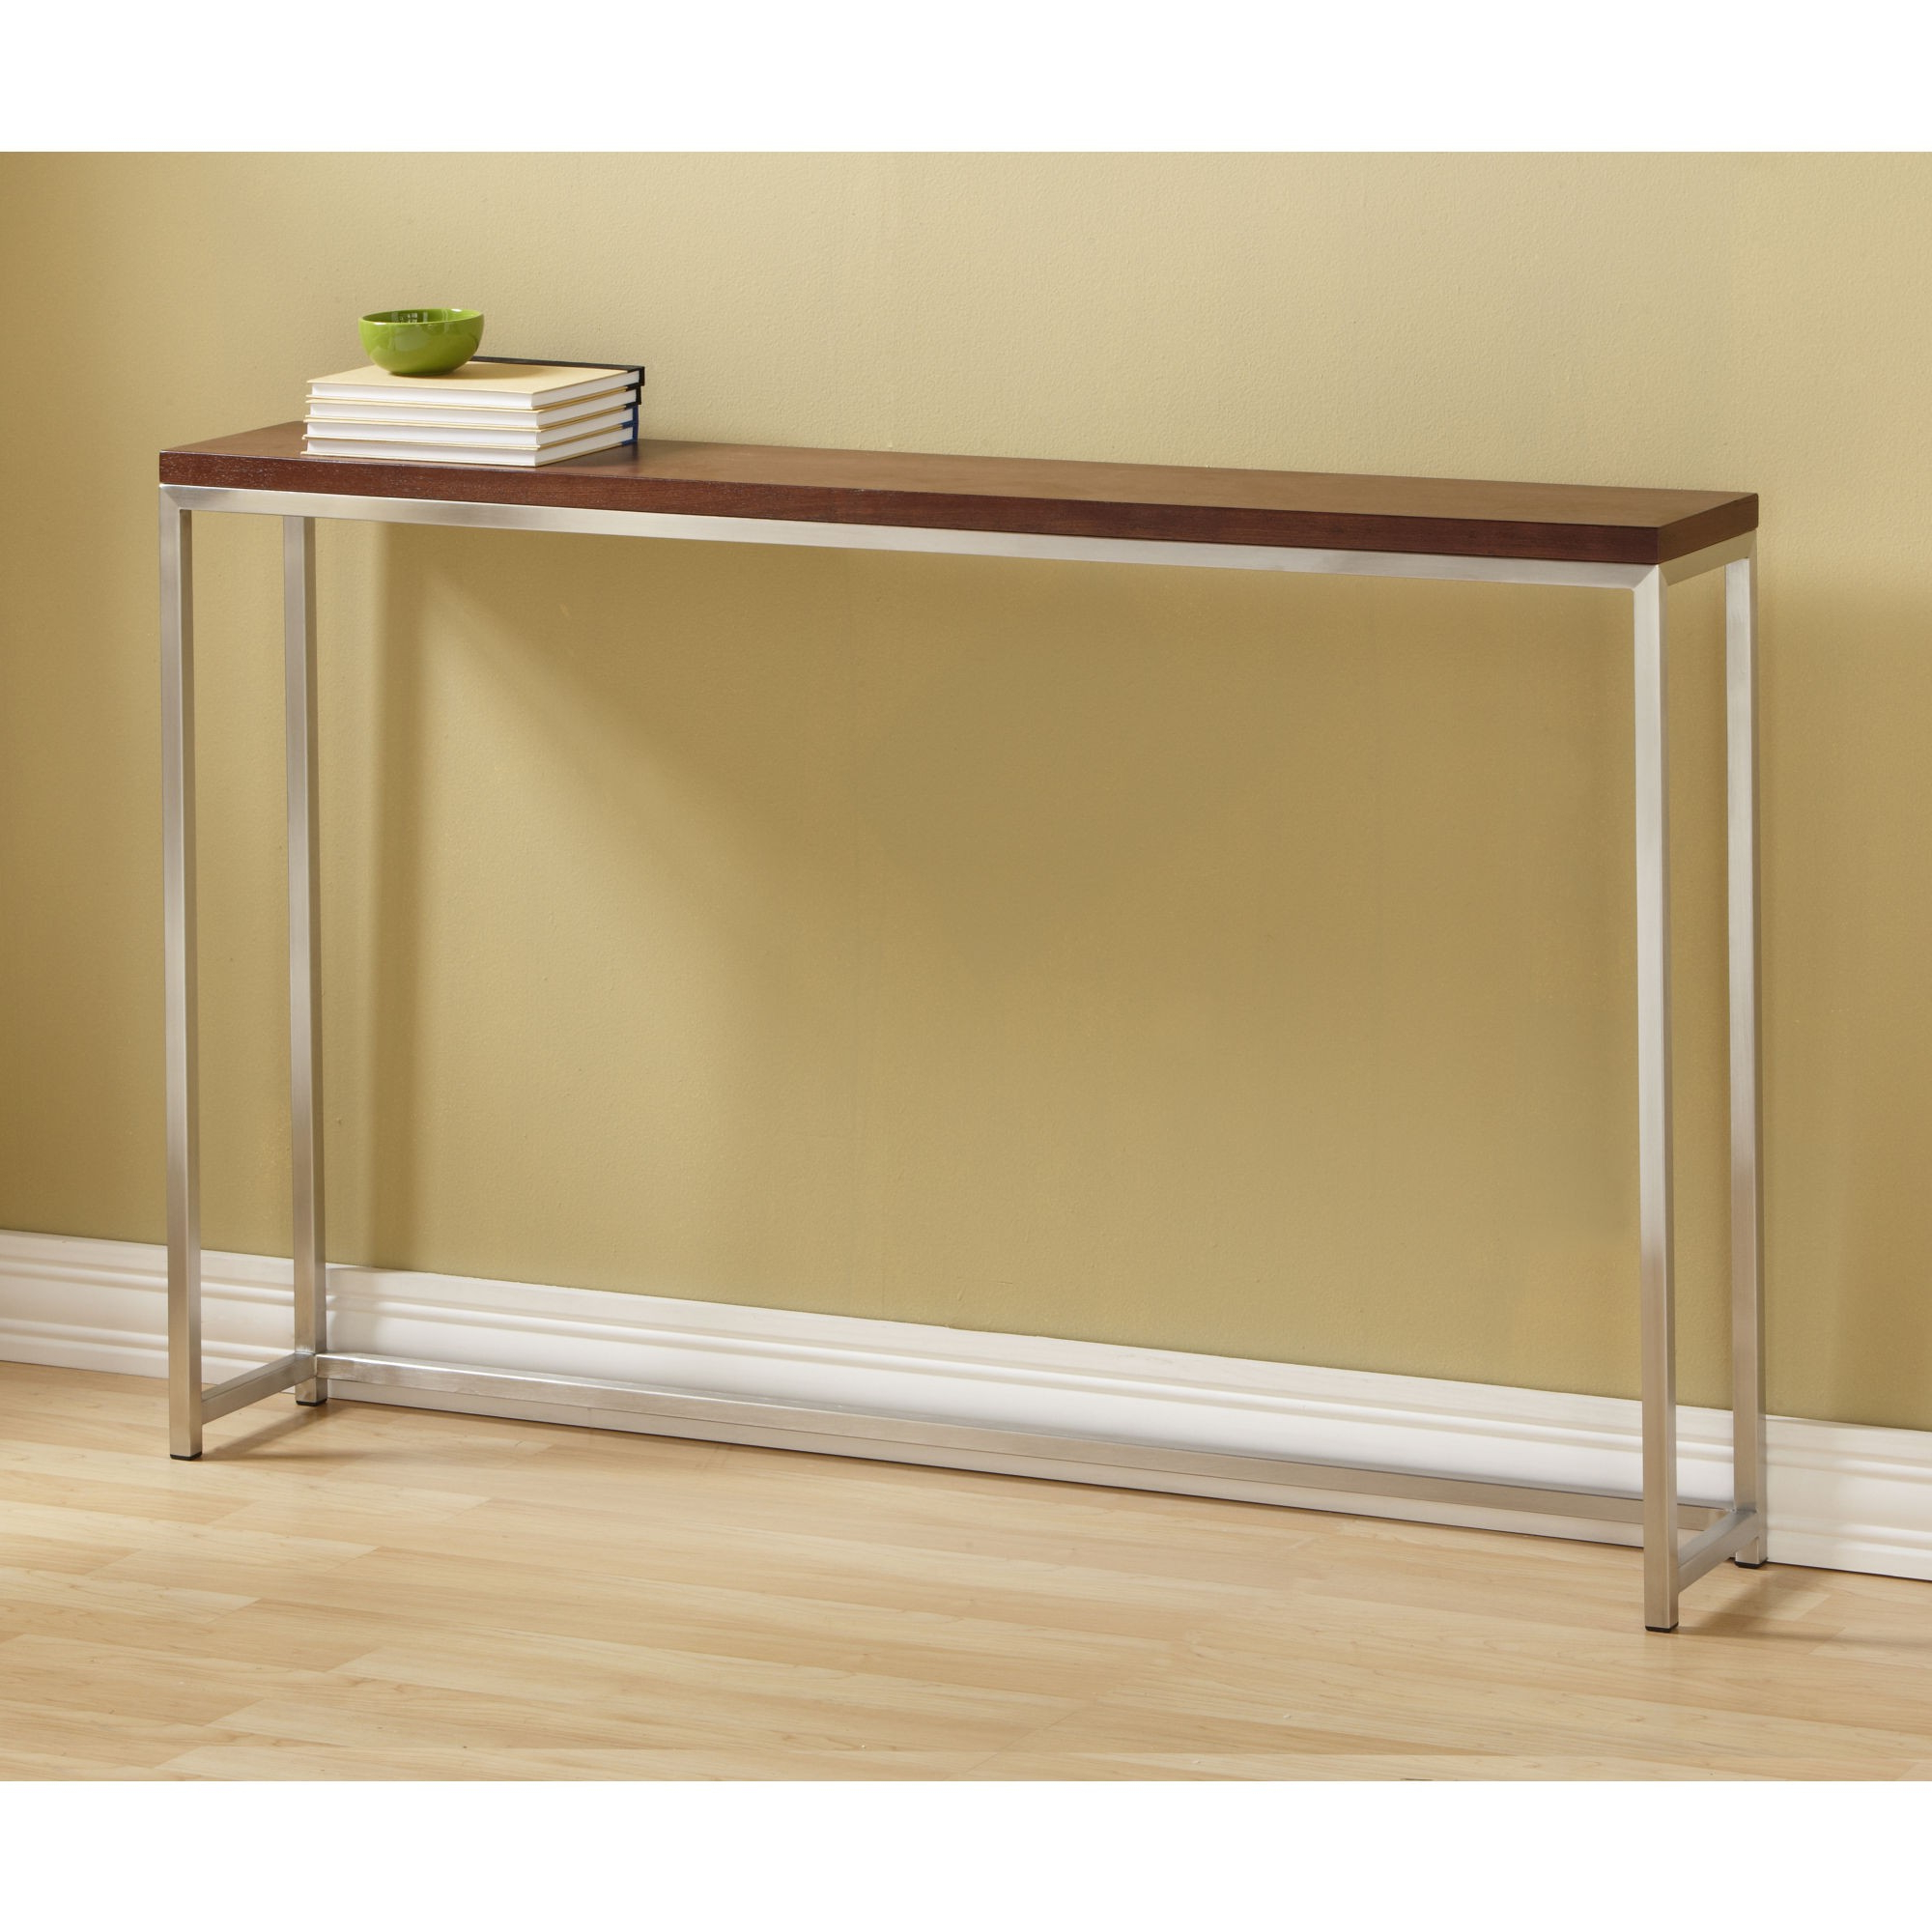 Contemporary Tall Console Table Coe With Varnished Wooden Top And With Frame Console Tables (View 7 of 20)